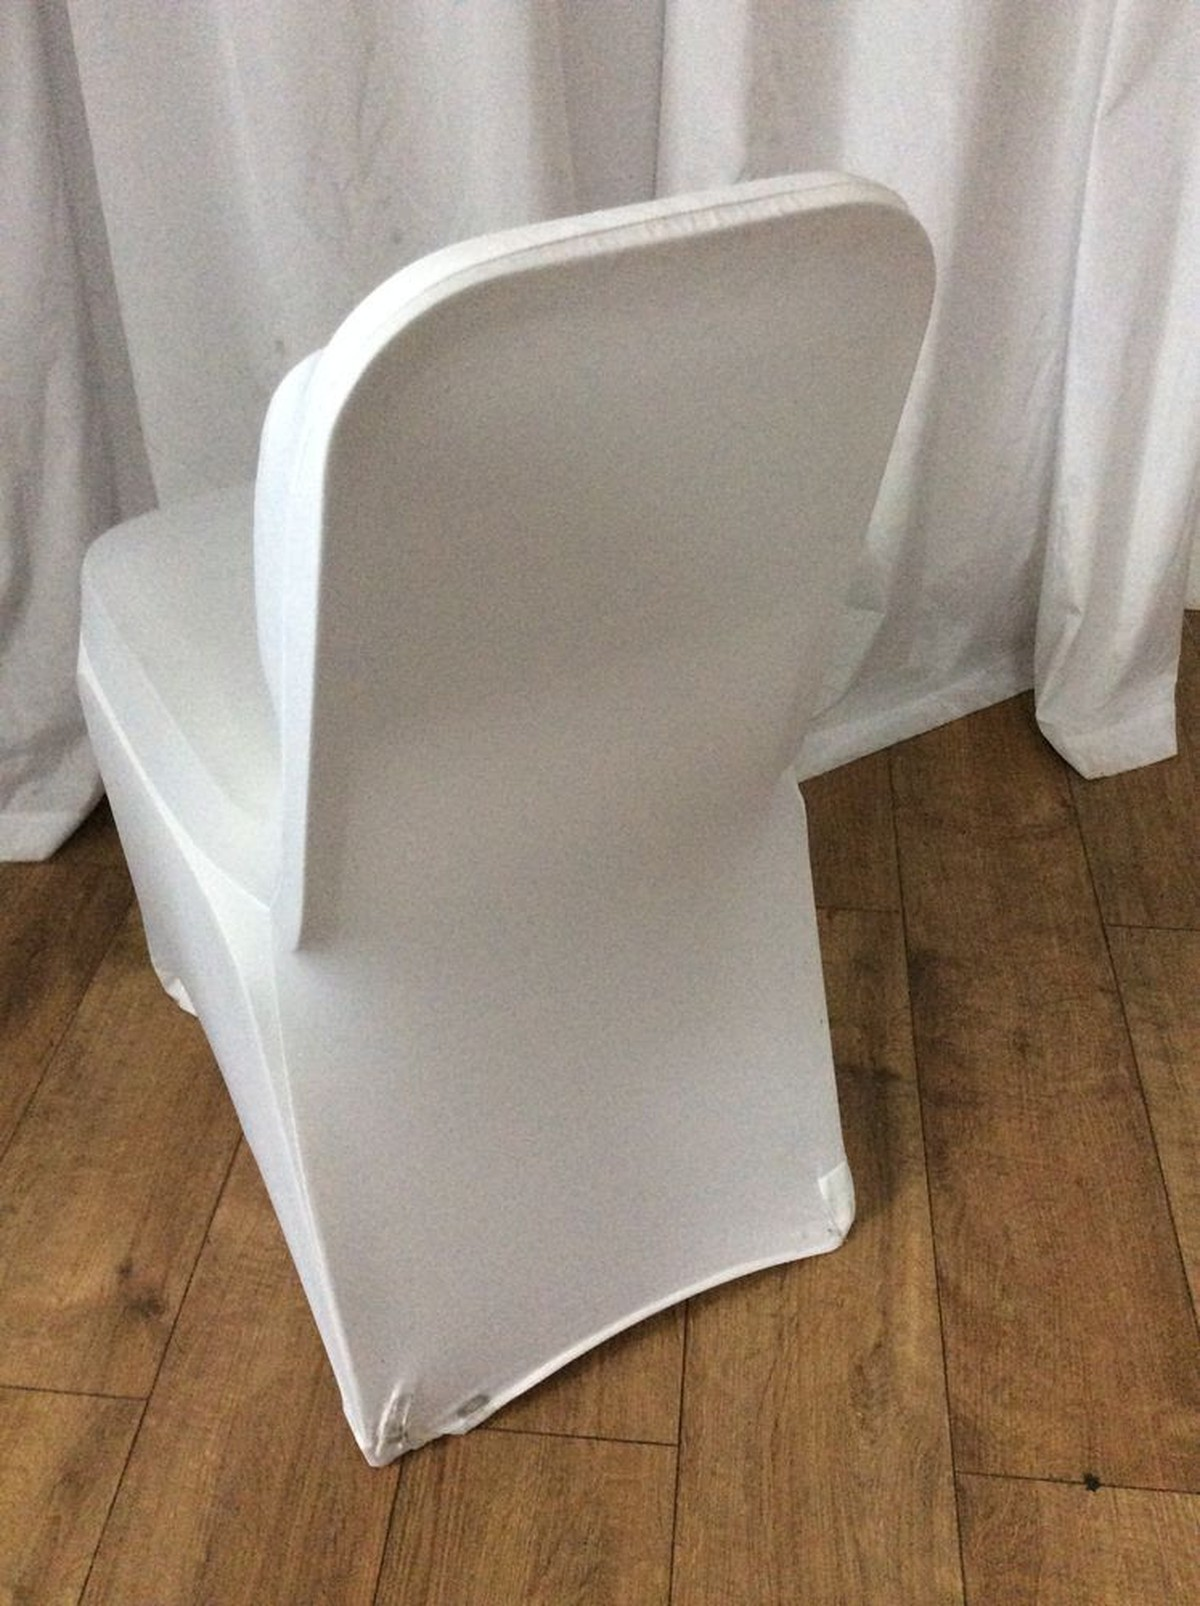 Secondhand Chairs And Tables Chair Covers White Lycra